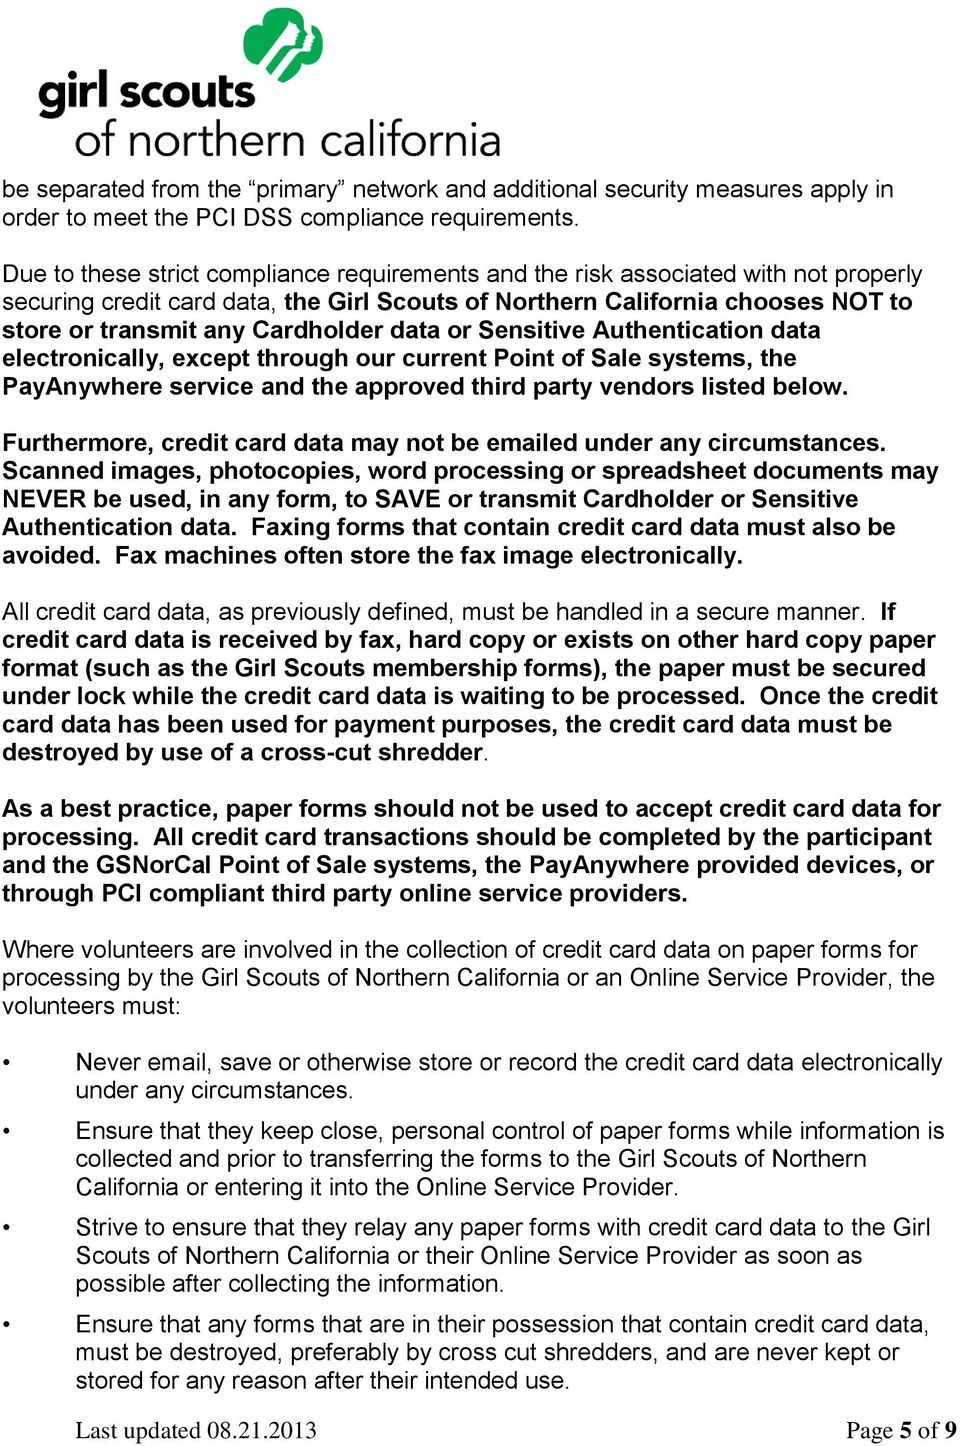 PCI Compliance Information Packet for Volunteers - Credit